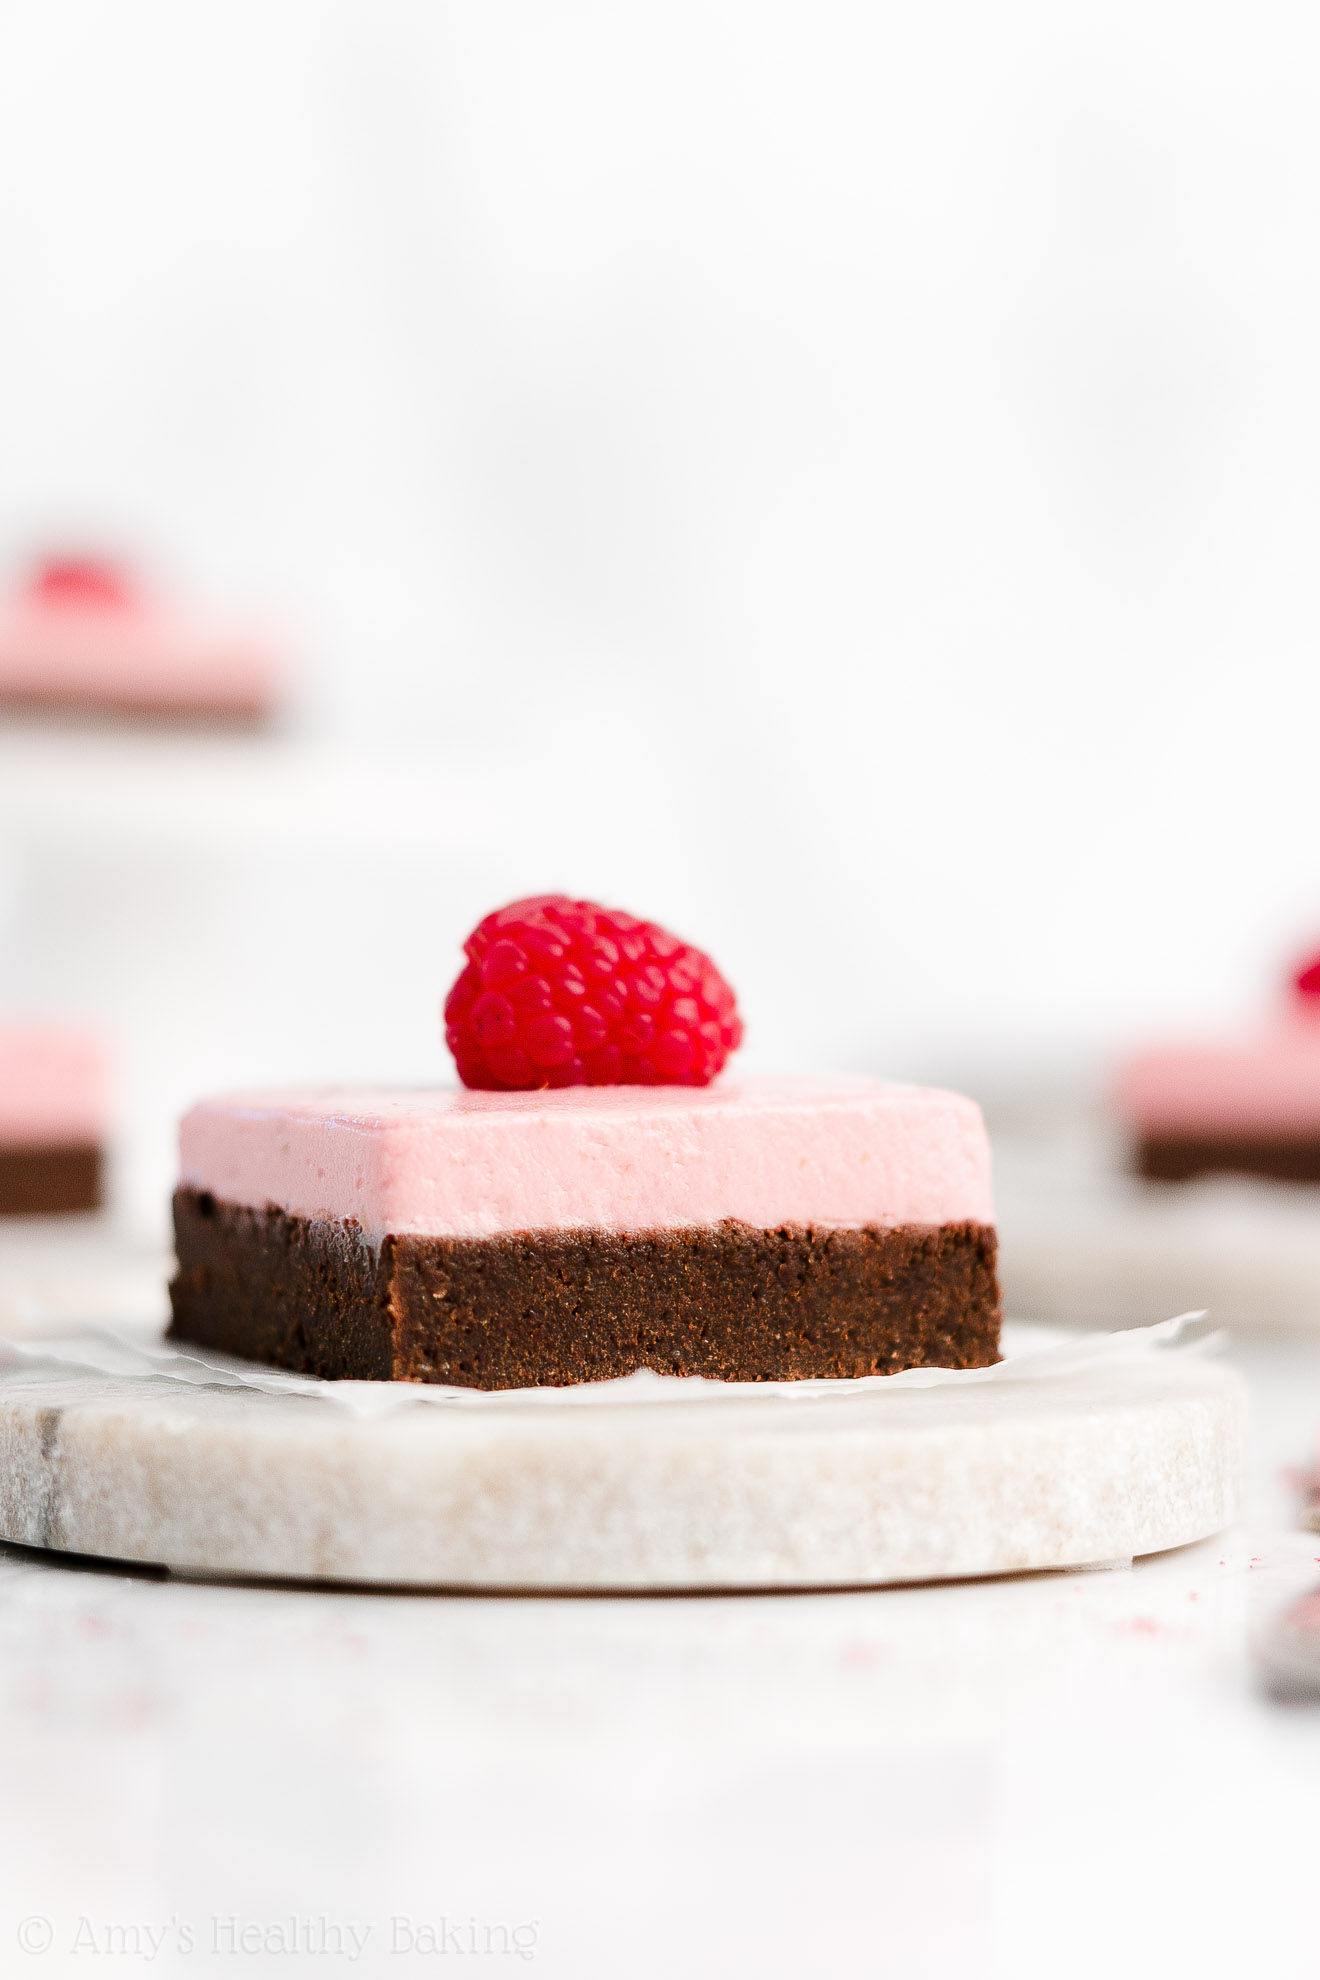 Easy Healthy Low Calorie Super Fudgy Dark Chocolate Brownies + Healthy Raspberry Frosting with Freeze Dried Raspberries